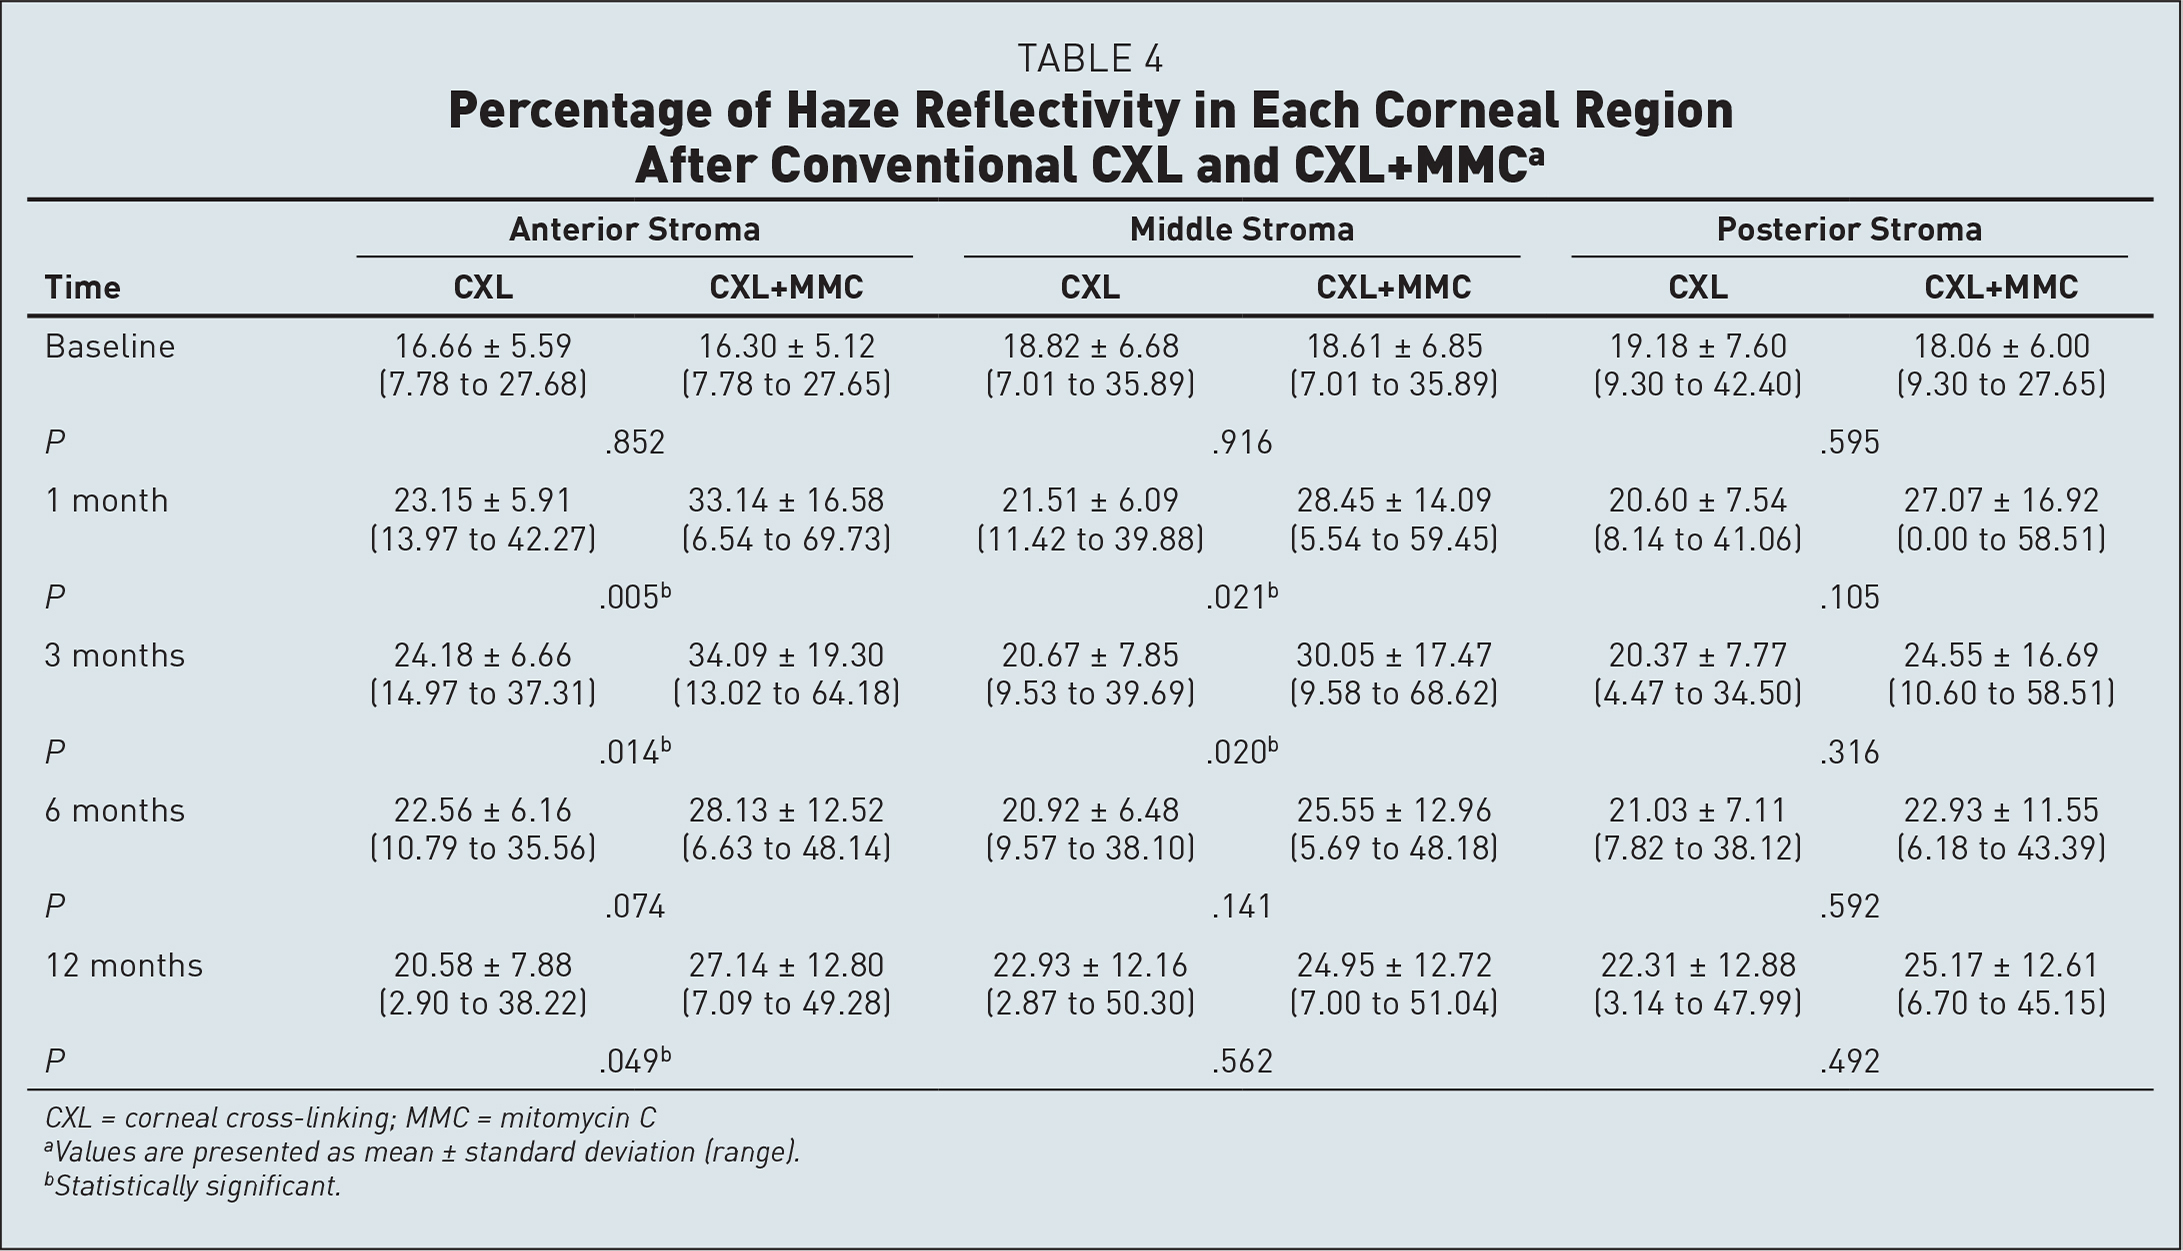 Percentage of Haze Reflectivity in Each Corneal Region After Conventional CXL and CXL+MMCa